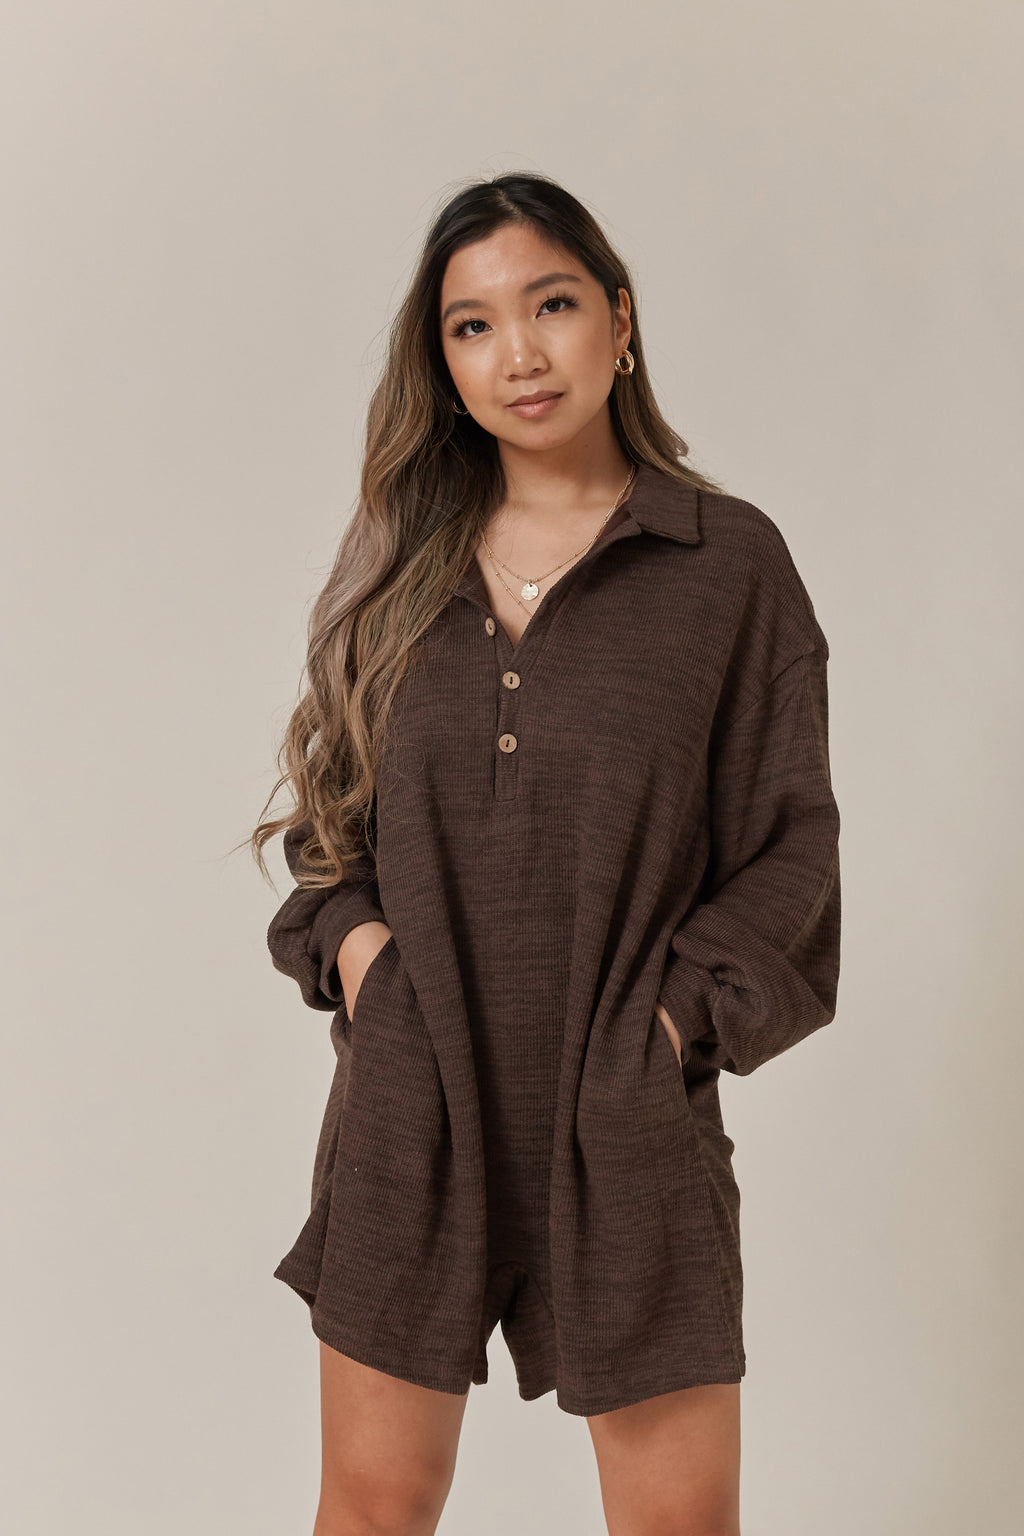 wild rina wildrina.com women's clothing boutique picnic knit brown romper free people button collar comfy loungewear